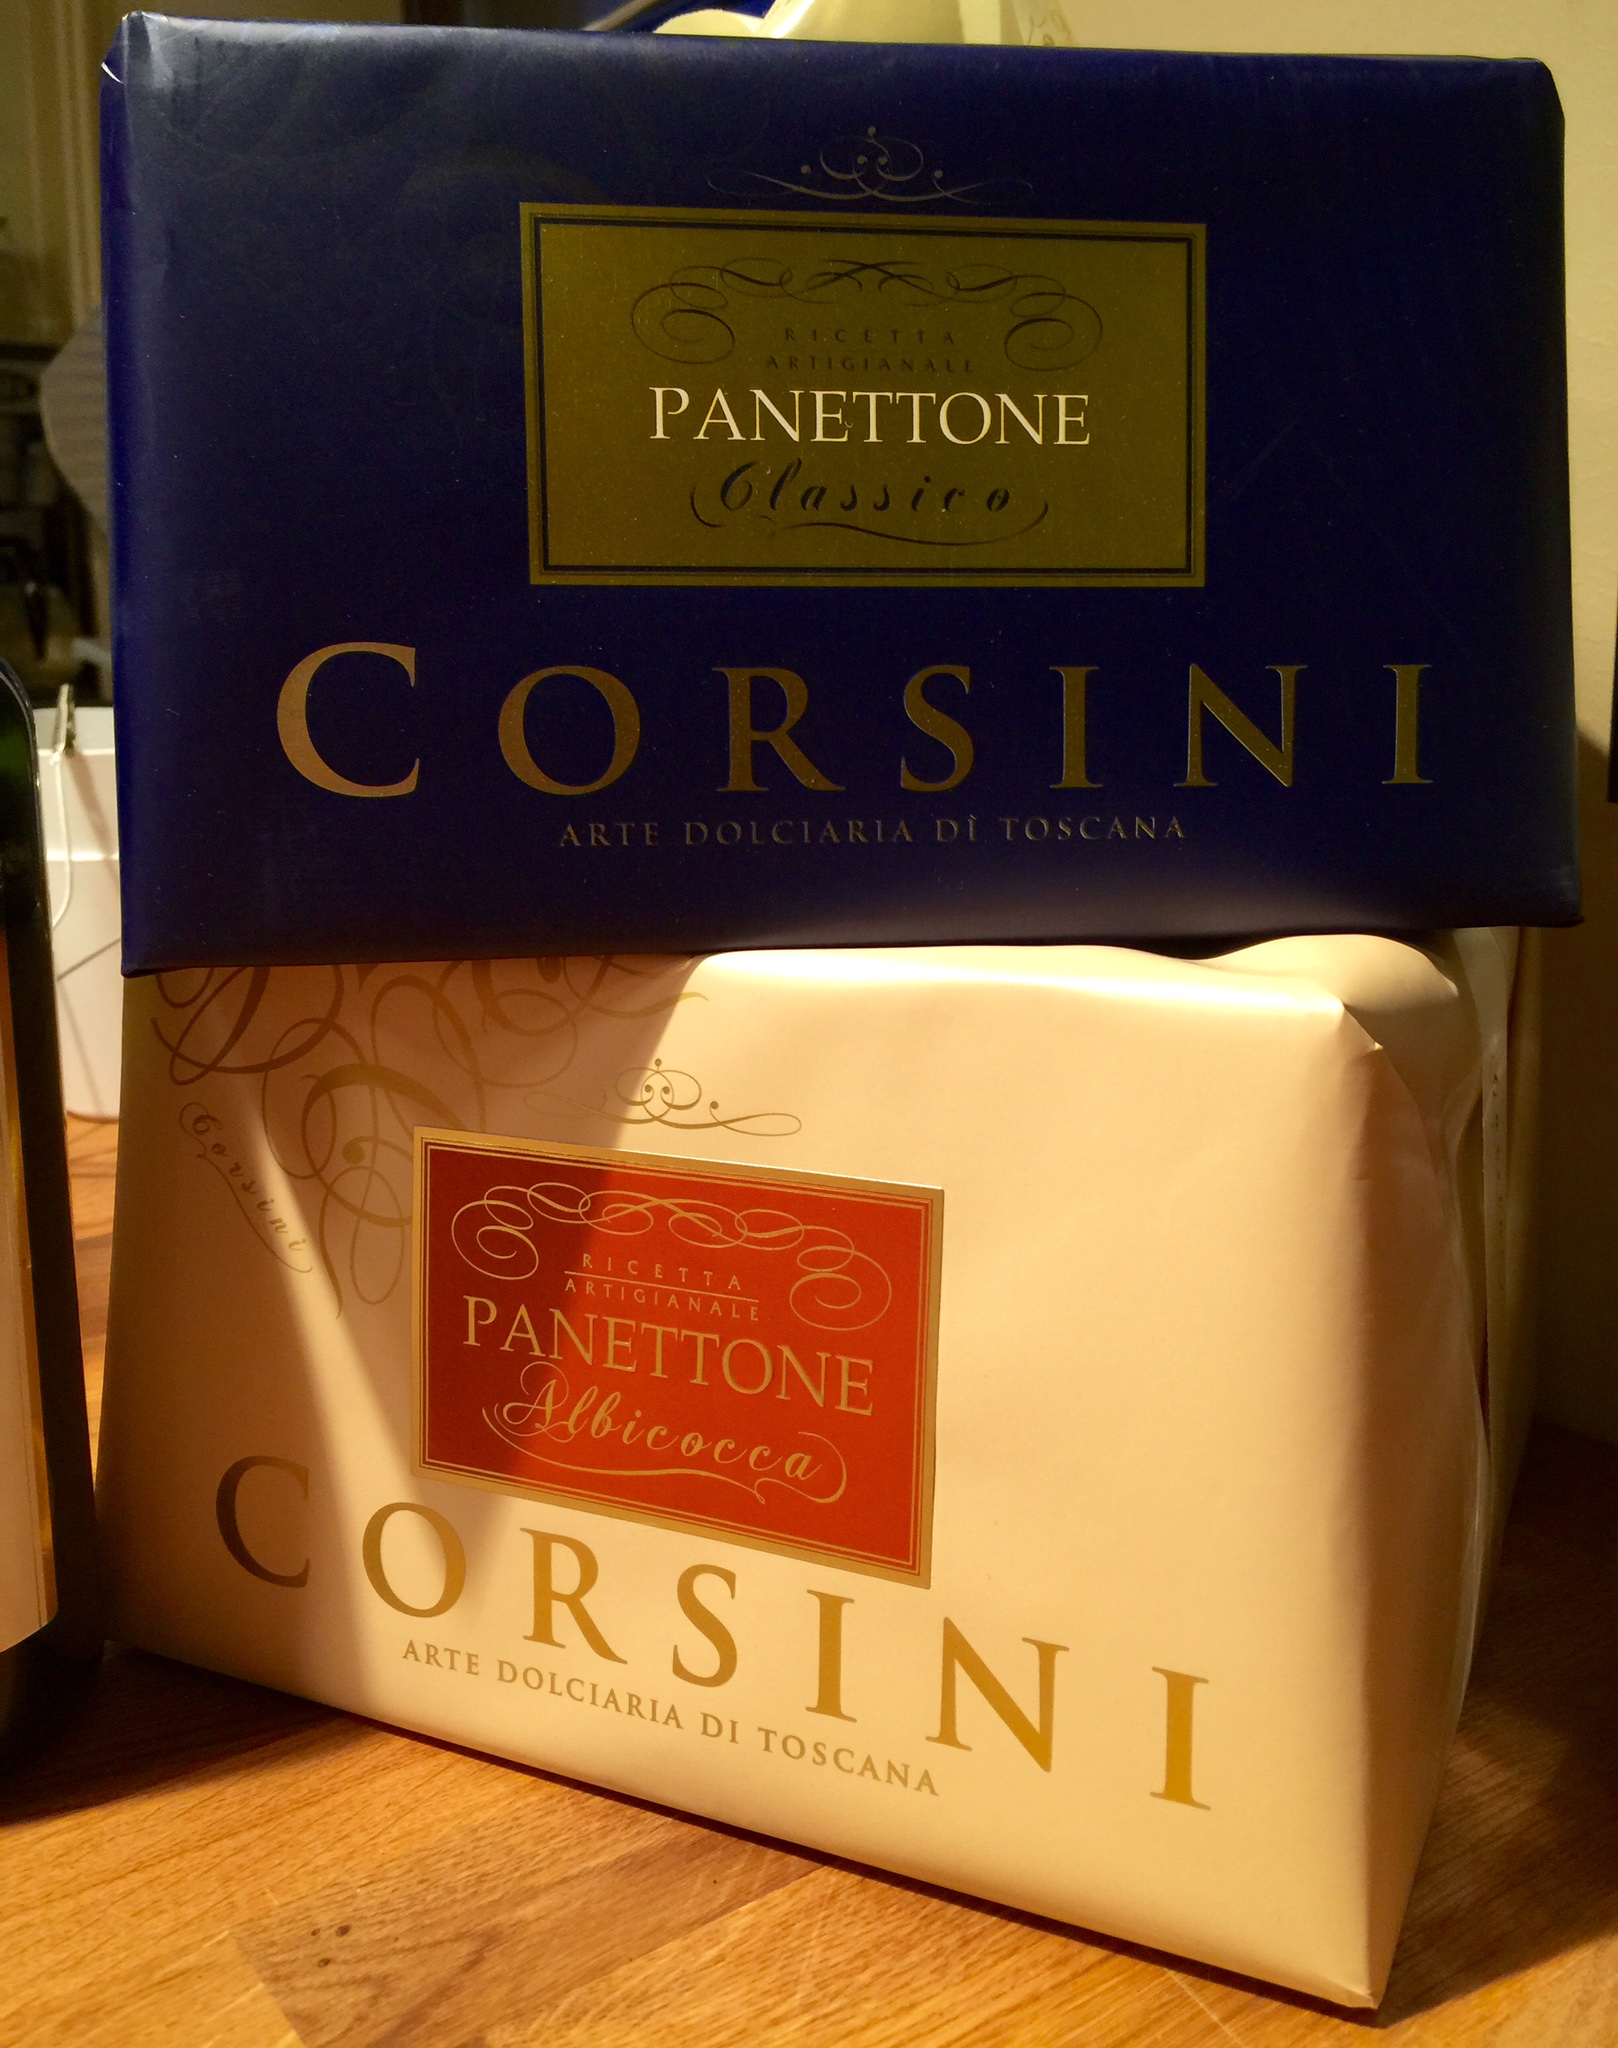 Panettone! Traditional with raisins and candied fruits; Panettone with apricot